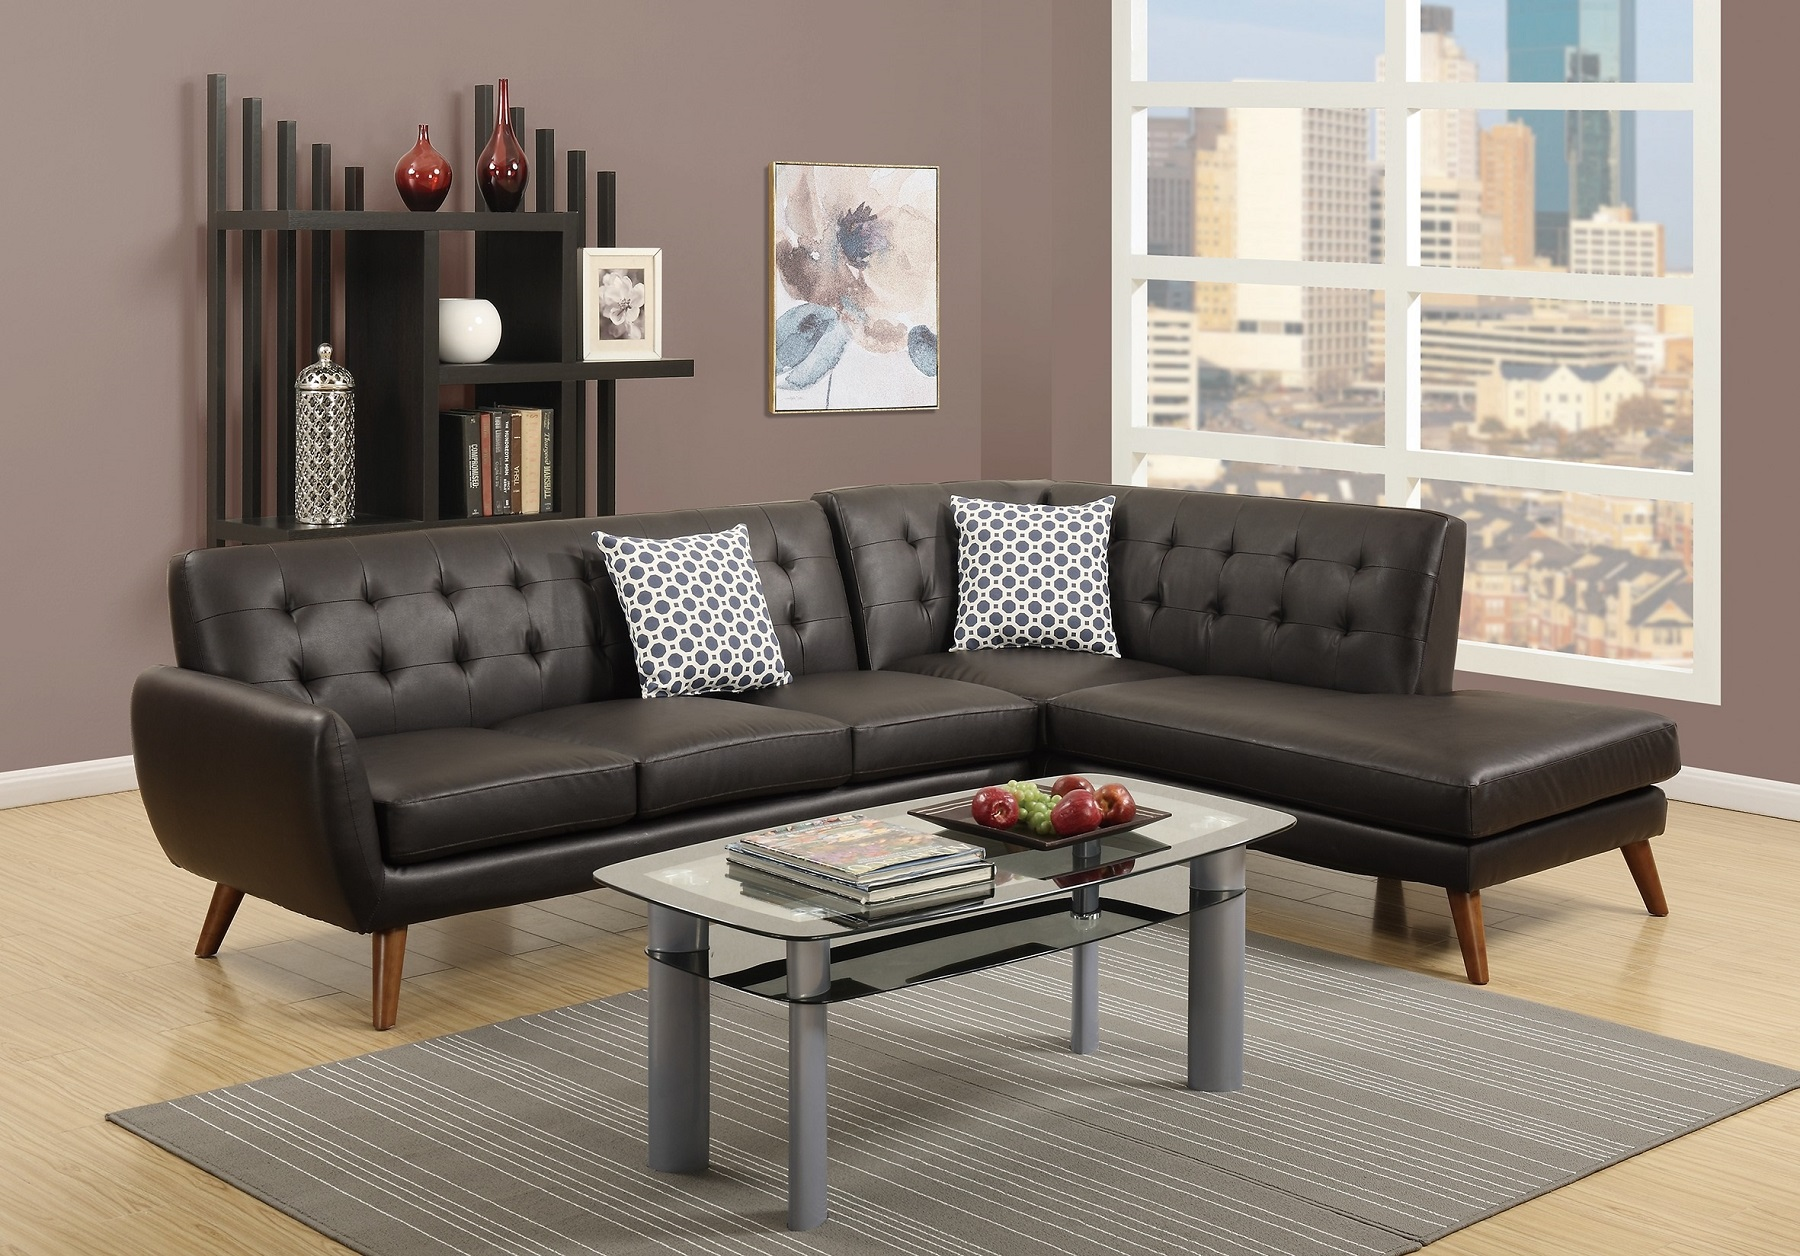 Unique Sectional Sofa Modern Tufted Couch Sofa Chaise Espresso Bonded  Leather Living Room Set